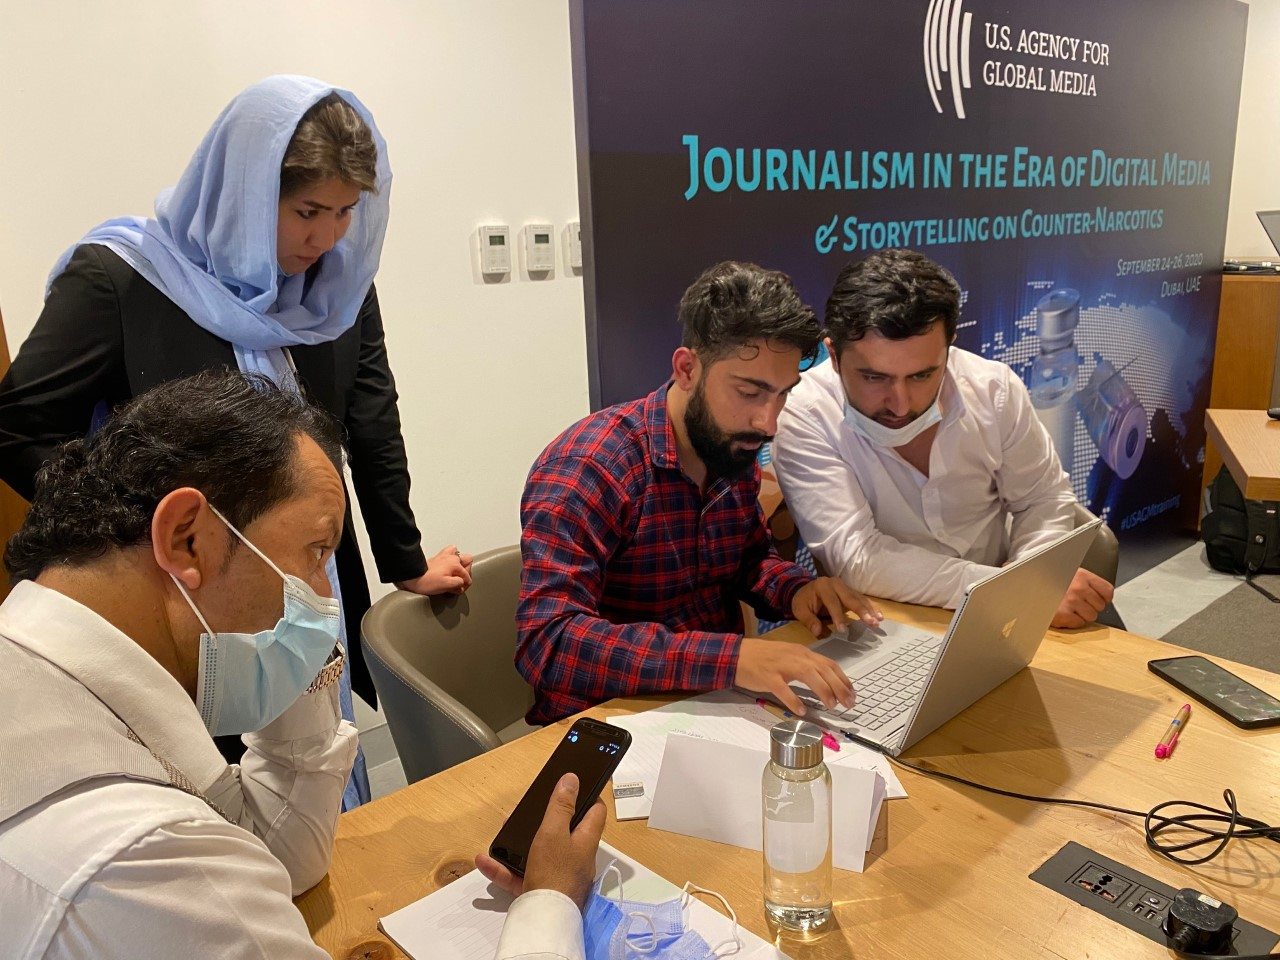 Afghanistan: Journalism in the Era of Digital Media